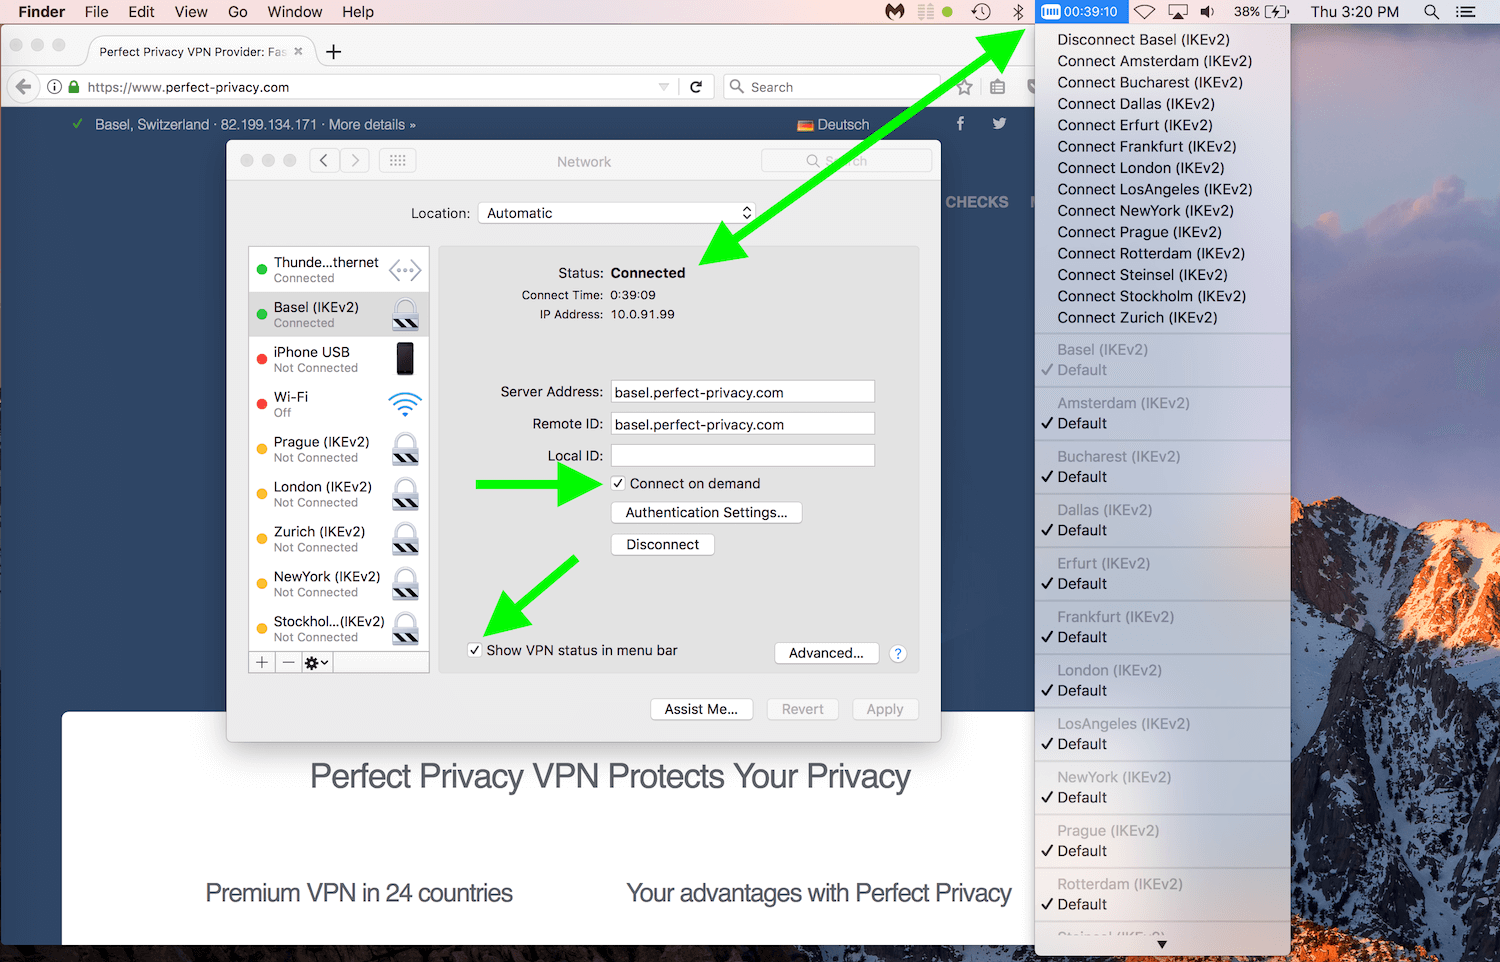 perfect privacy IKEv2